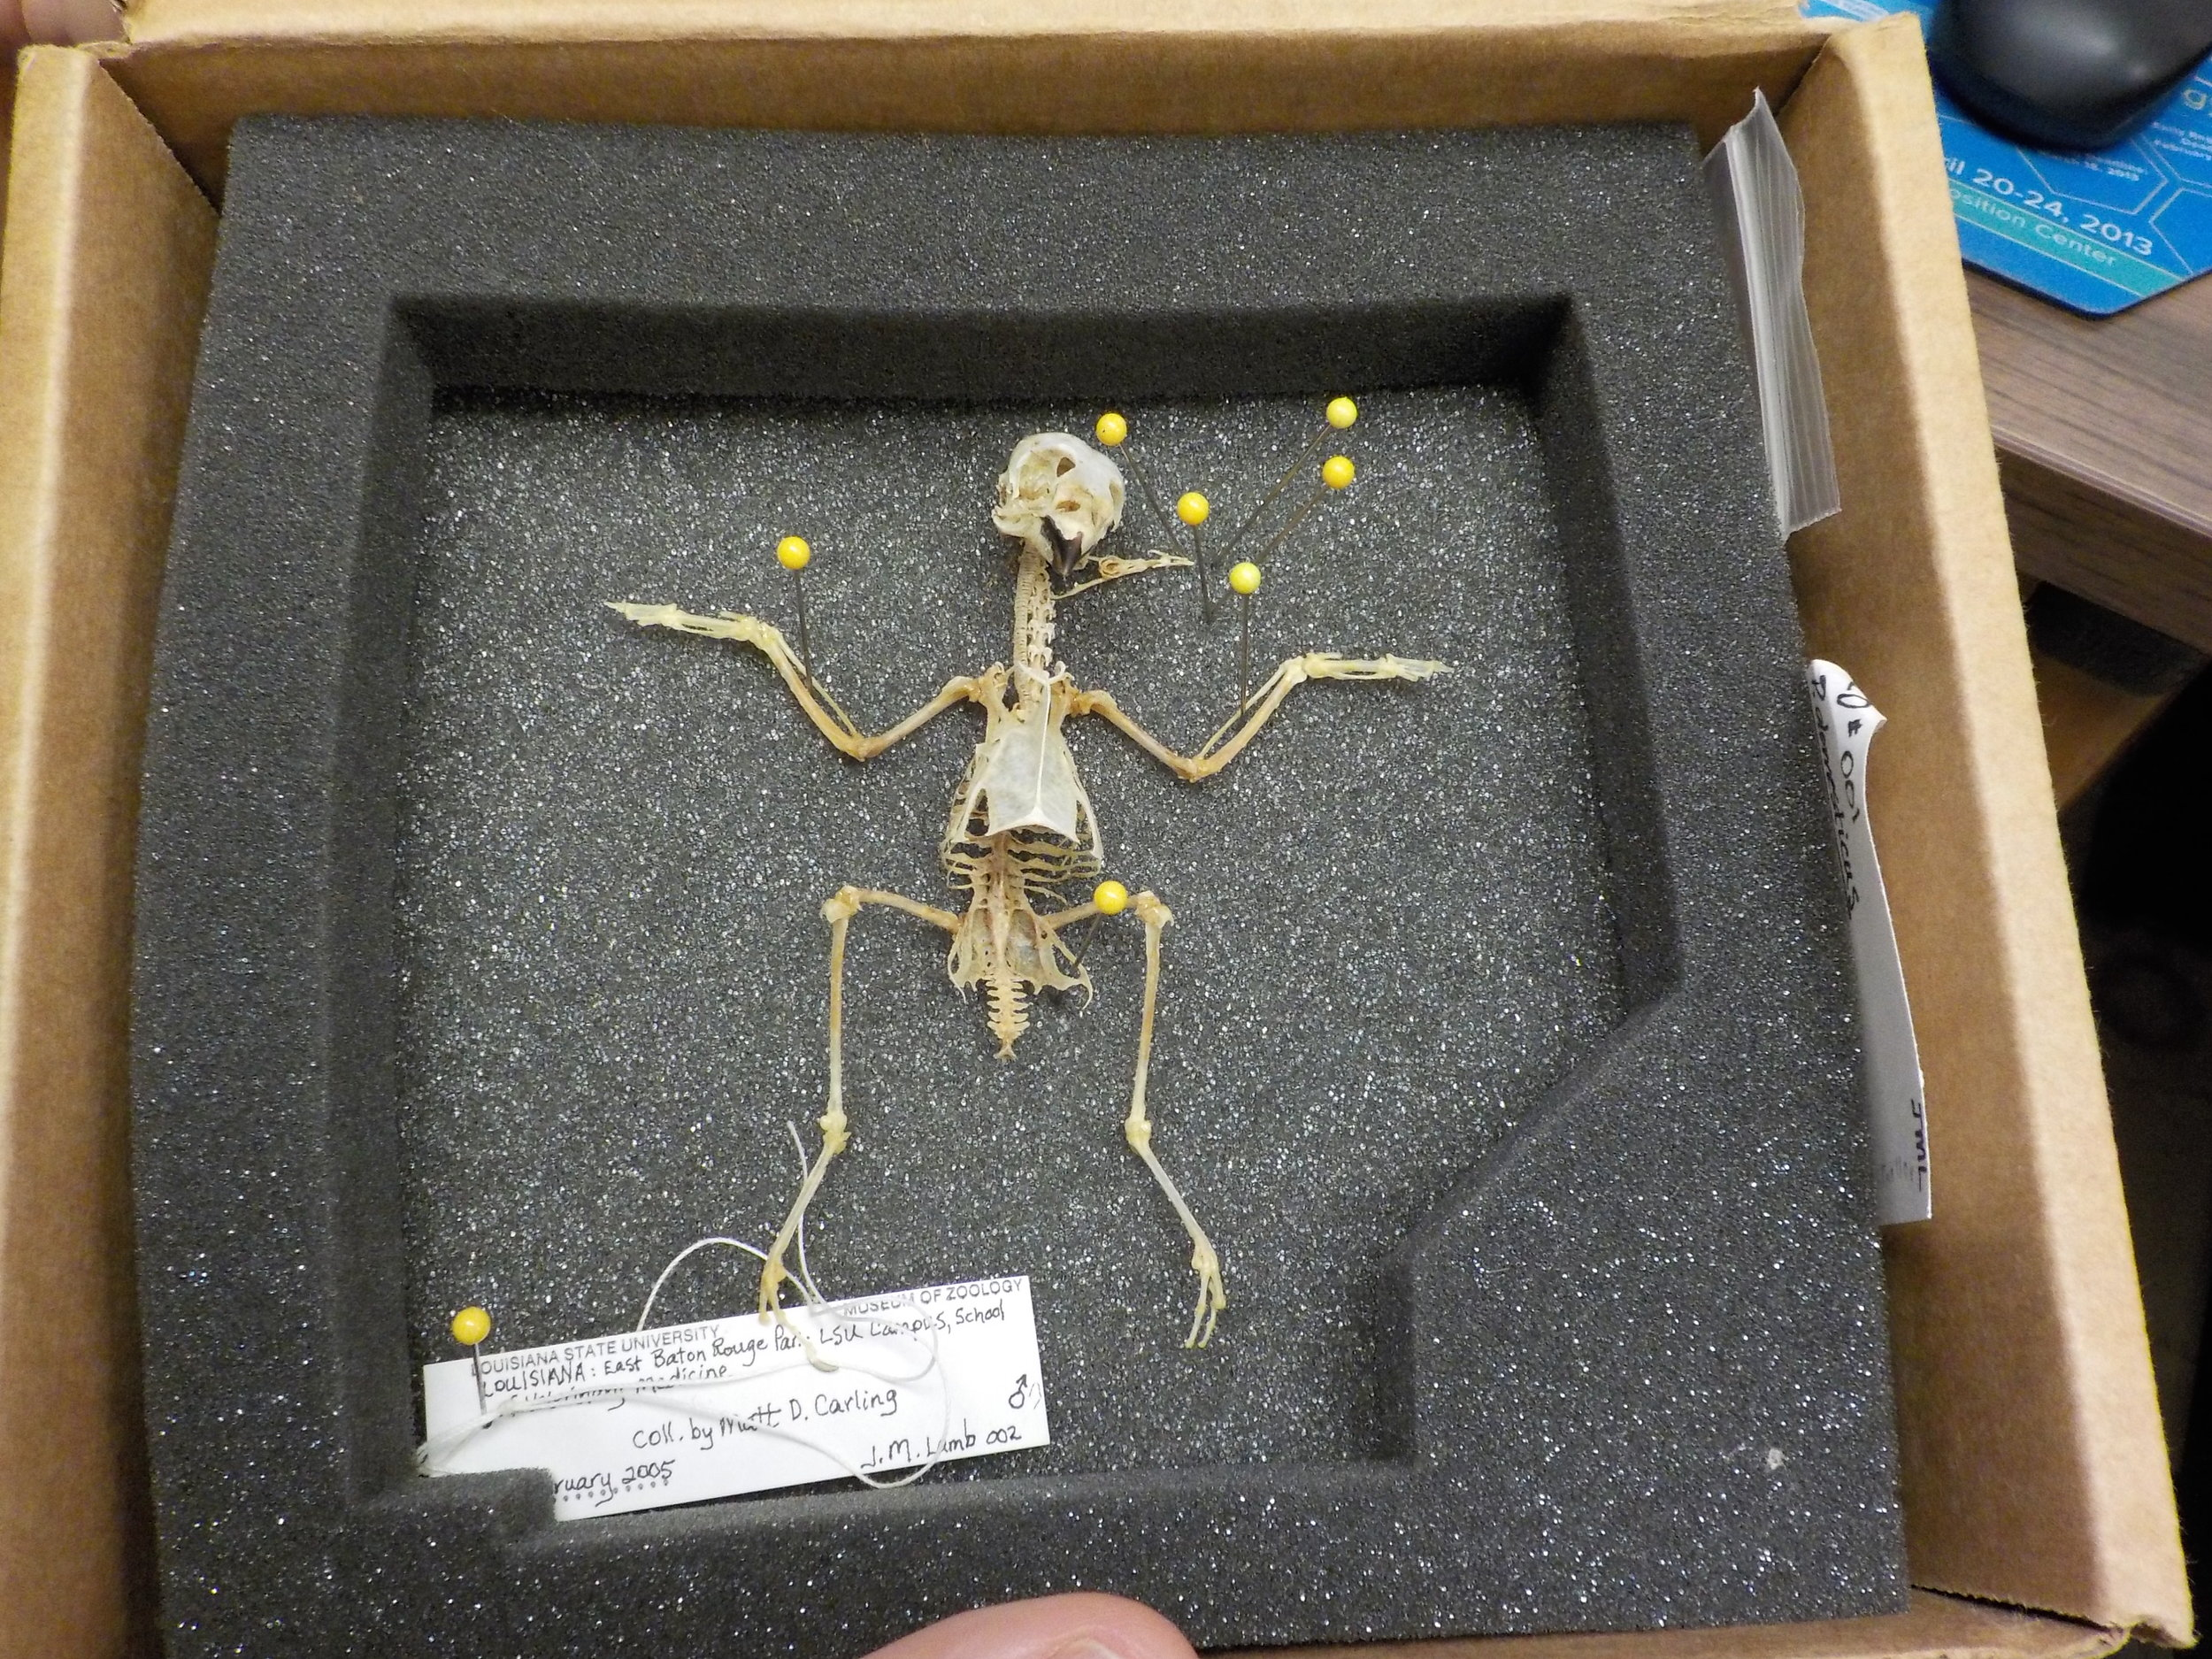 Bones of a sparrow, that will be used for creating a 3D model for studying bird locomotion.